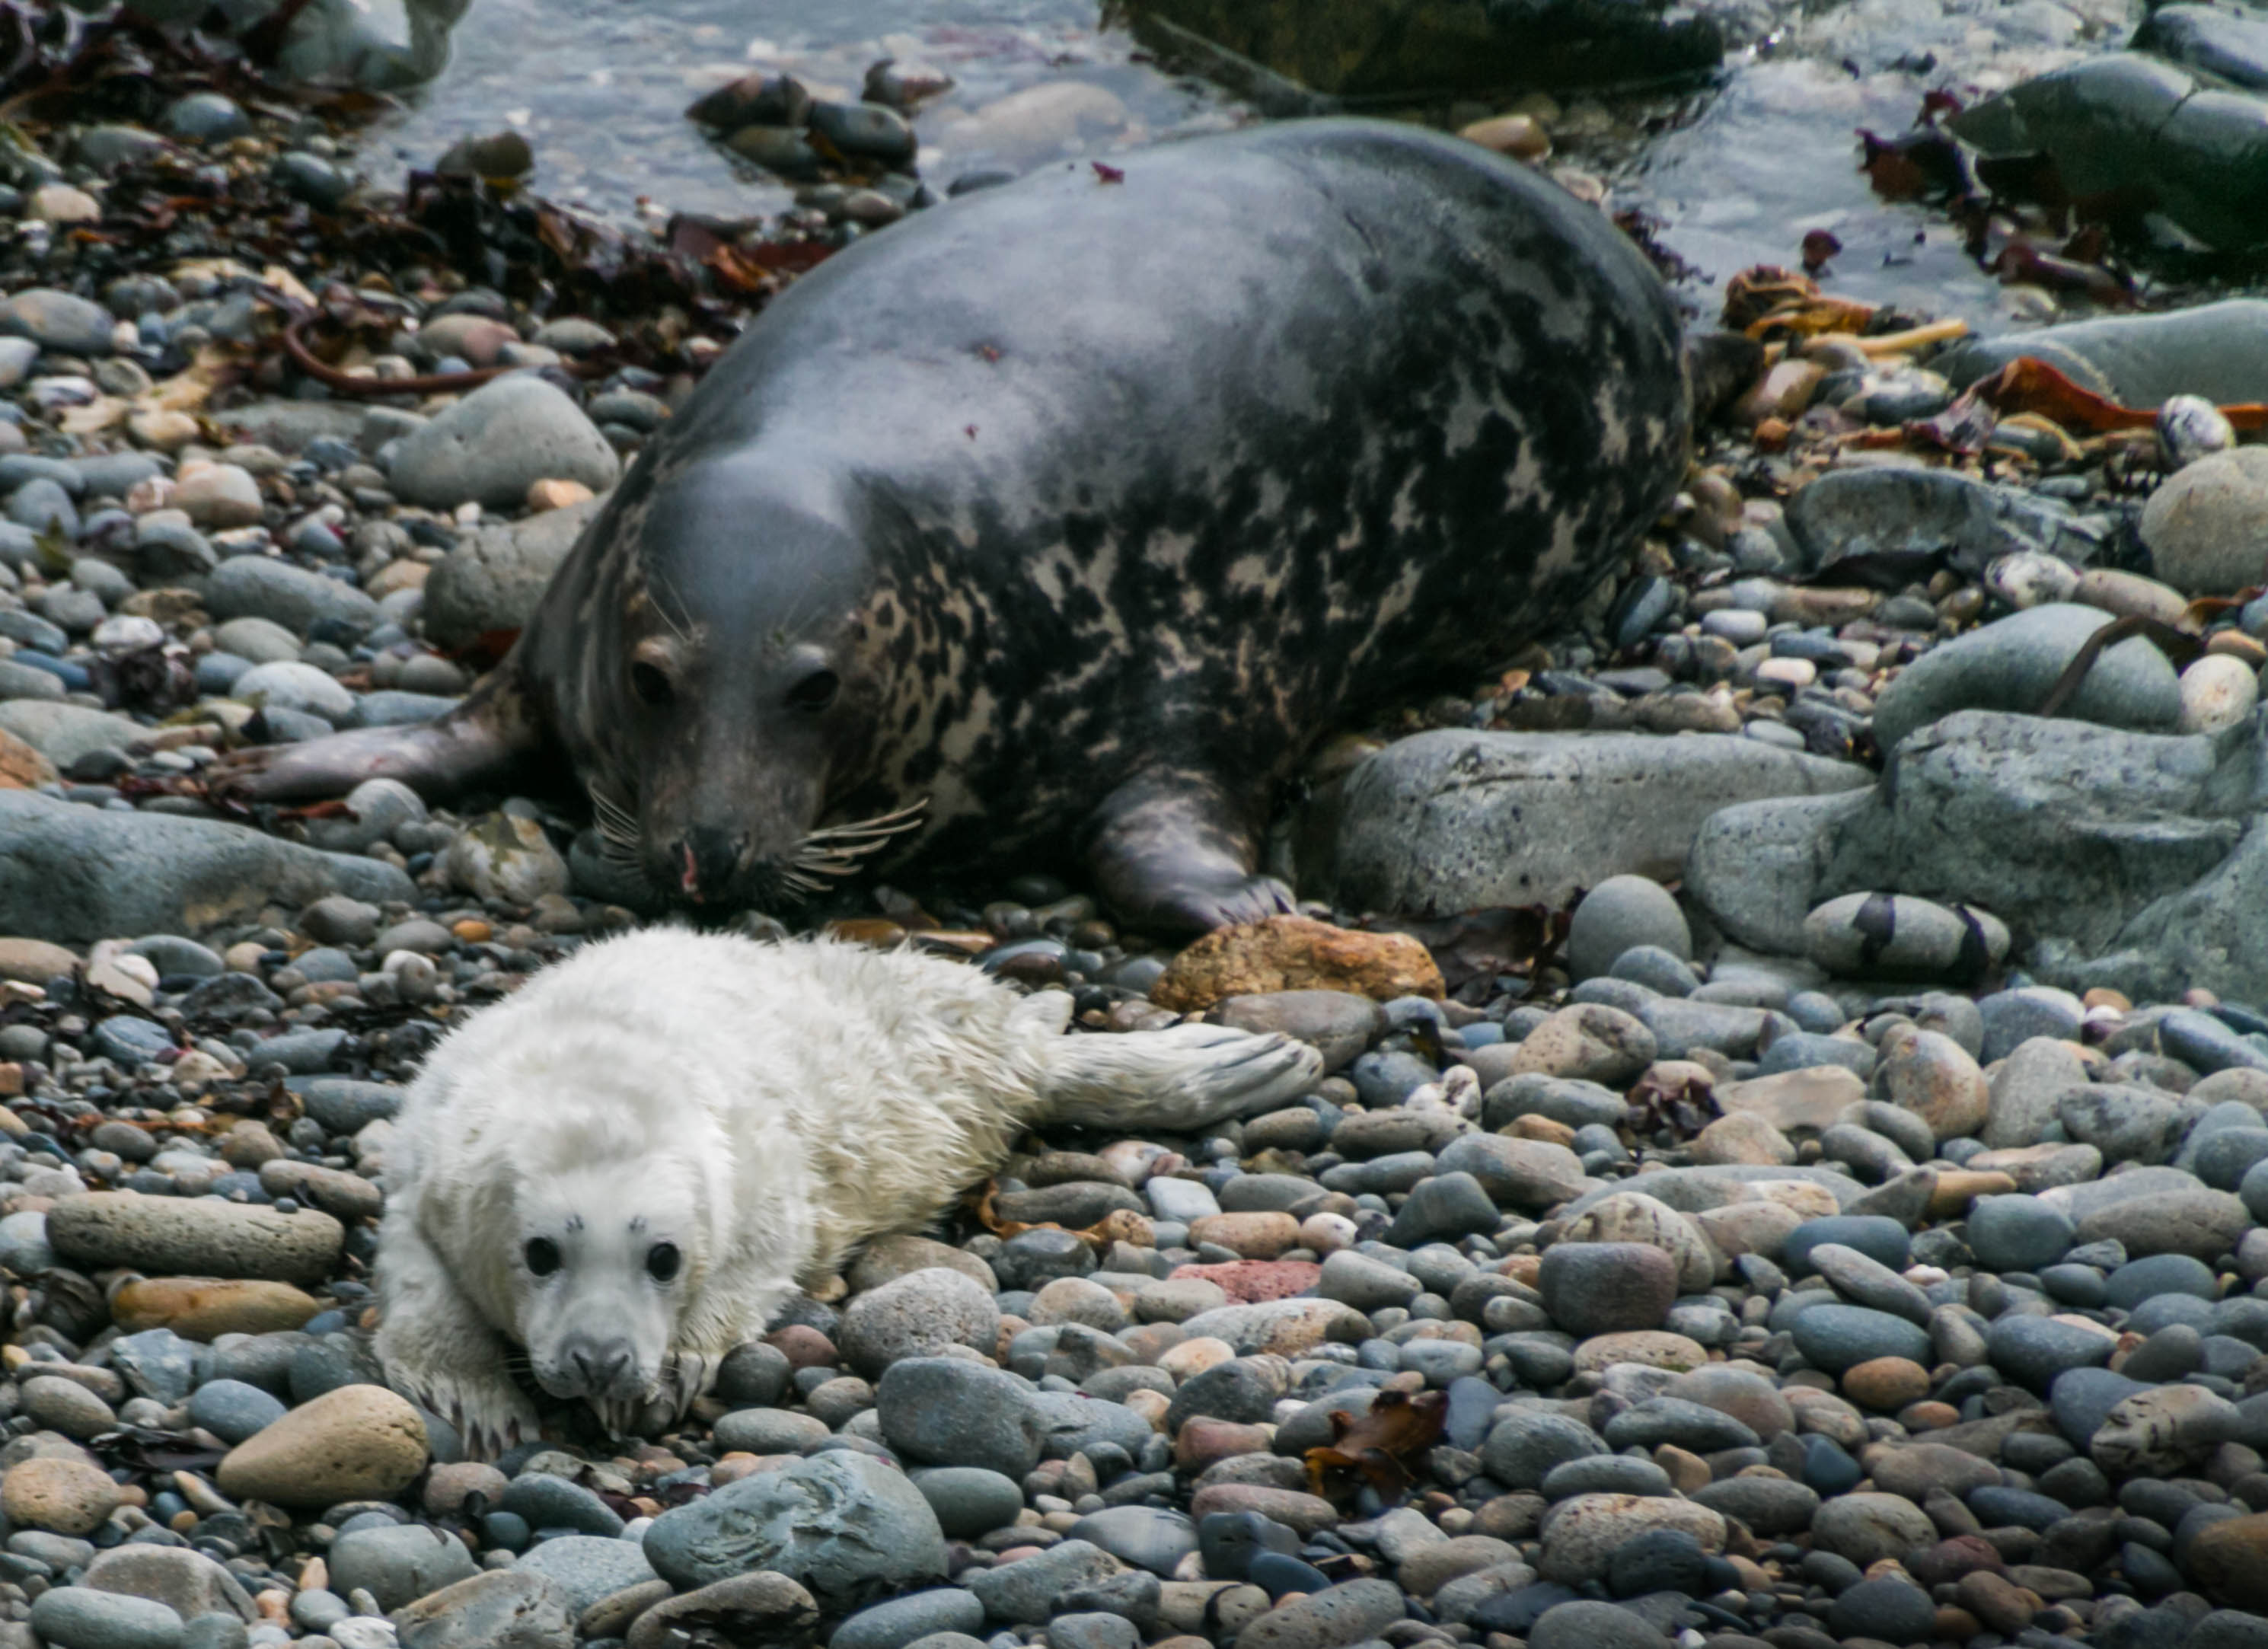 Grey seal cow with newborn pup on Ramsey Island near St Davids, Pembrokeshire Coast National Park, Wales, UK